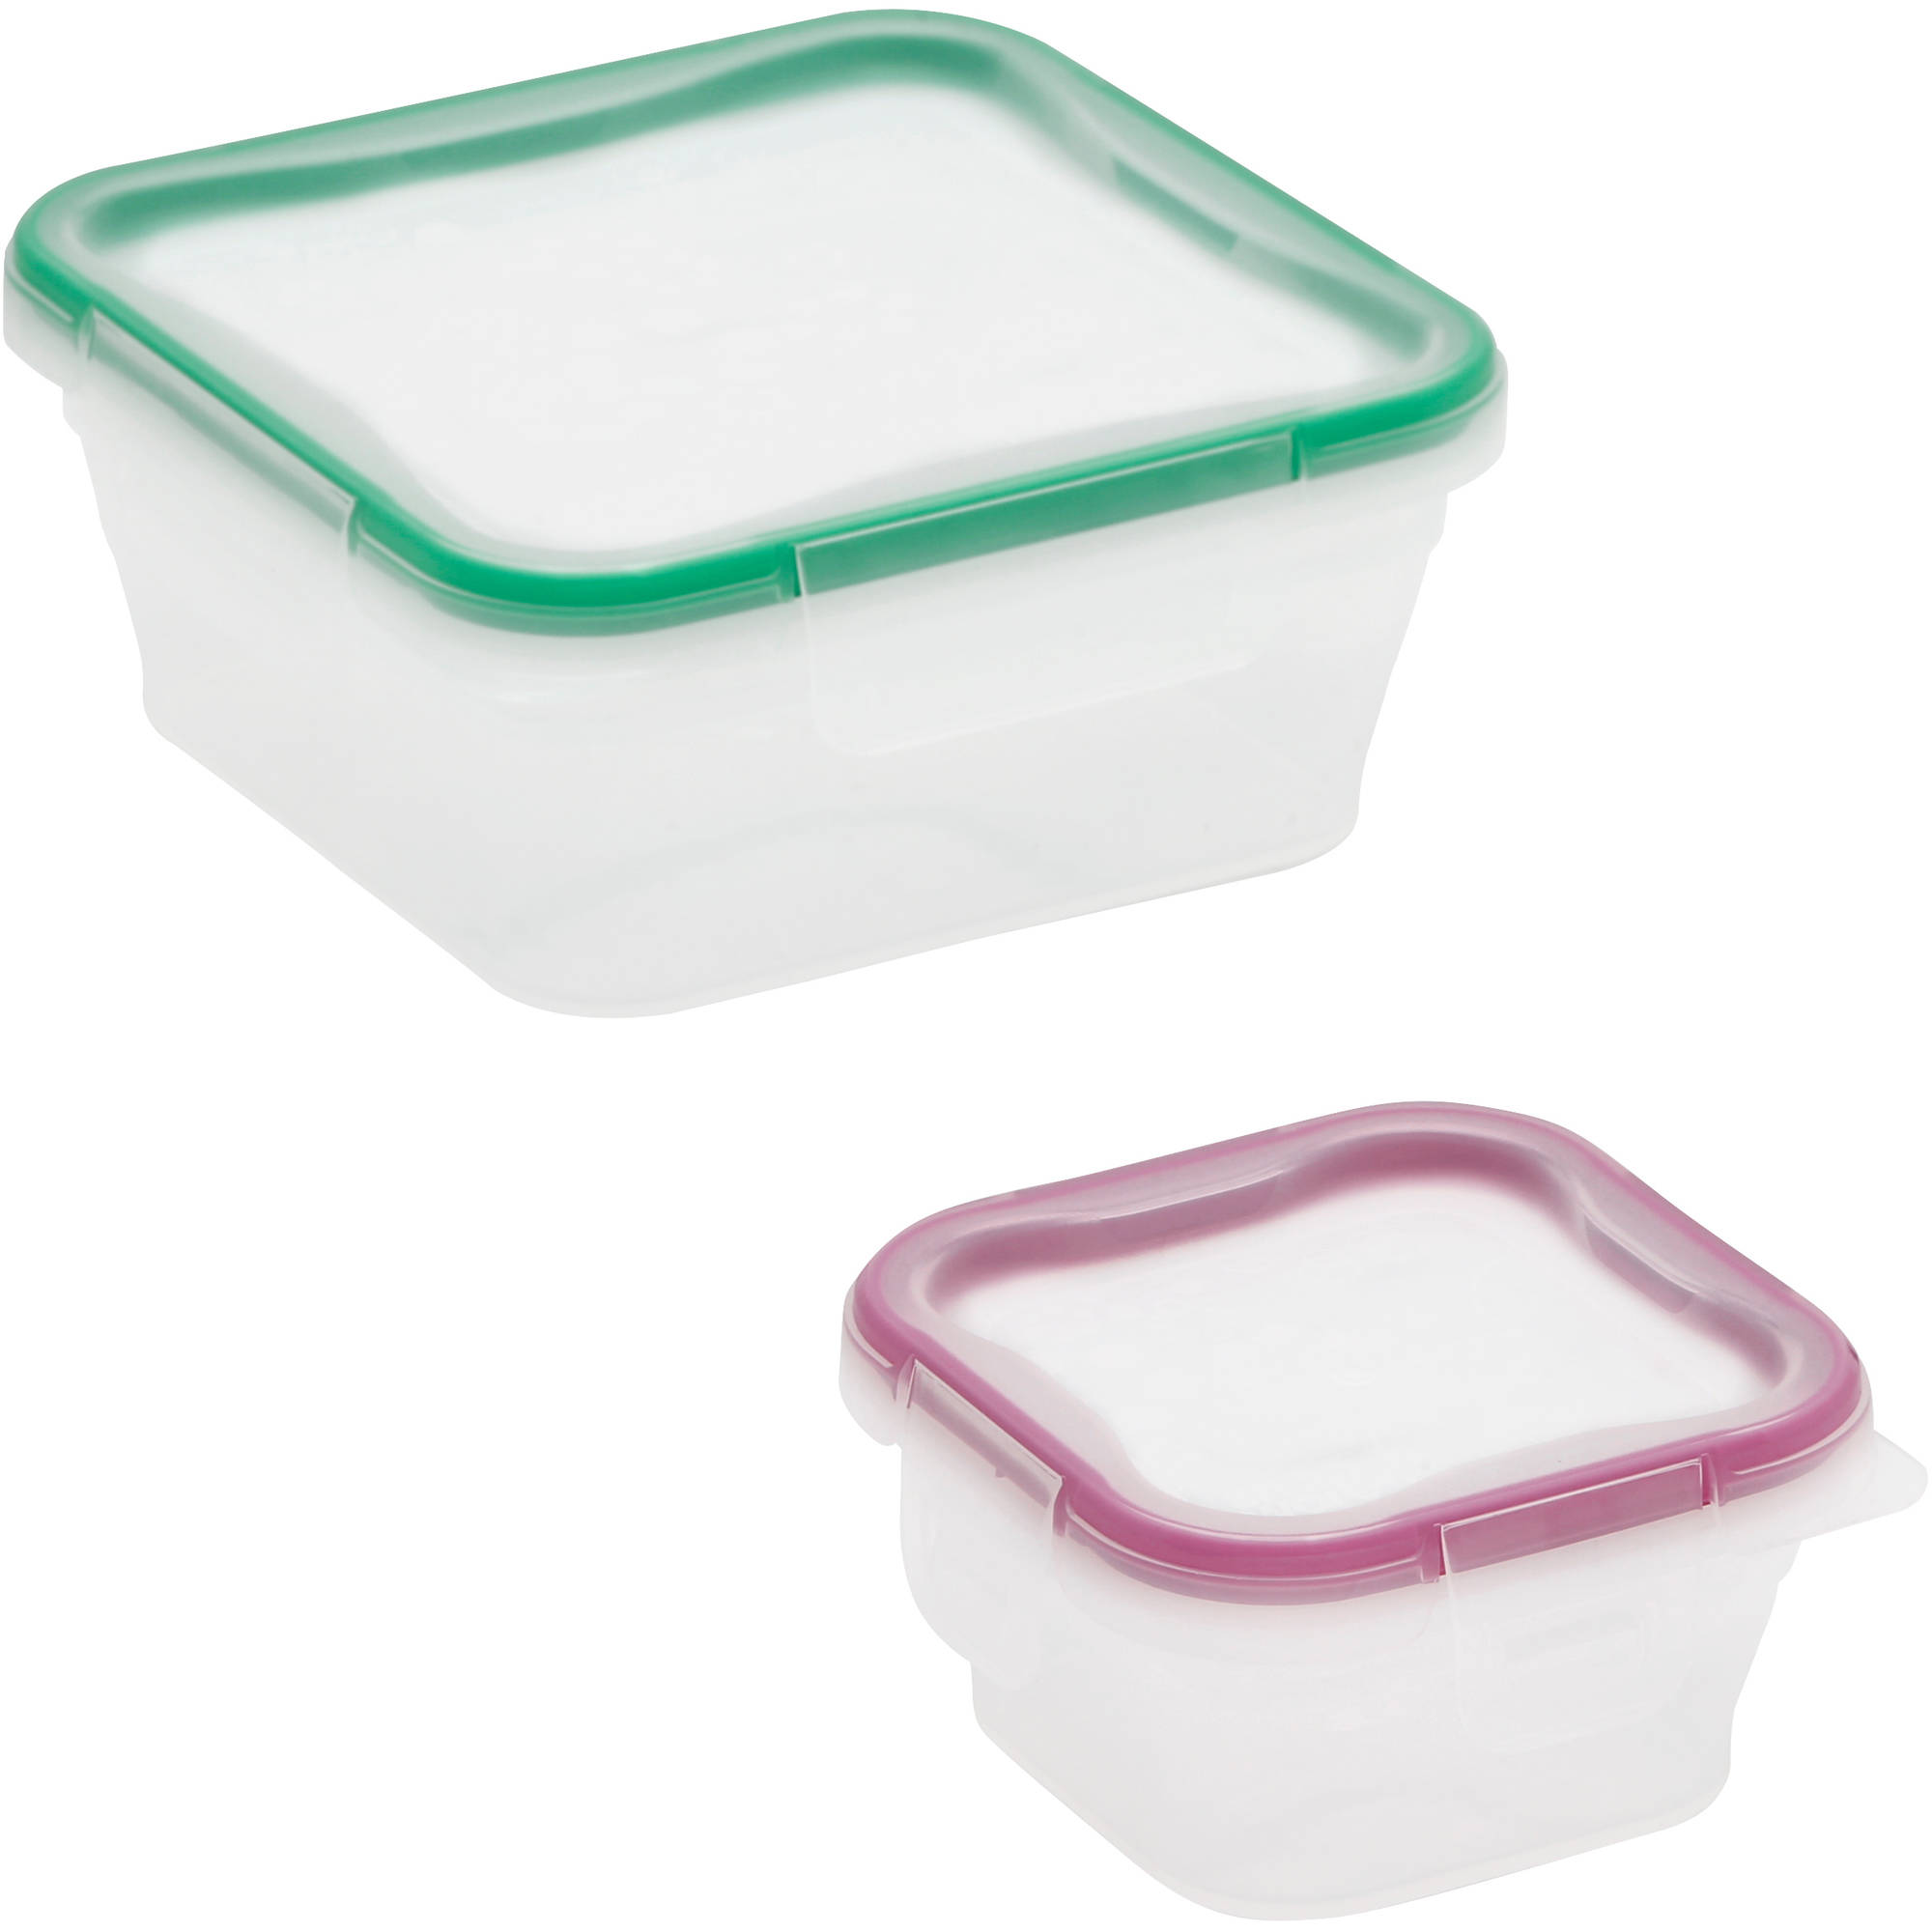 Snapware Total Solution 4-Piece Plastic Square Container Value Pack, Clear